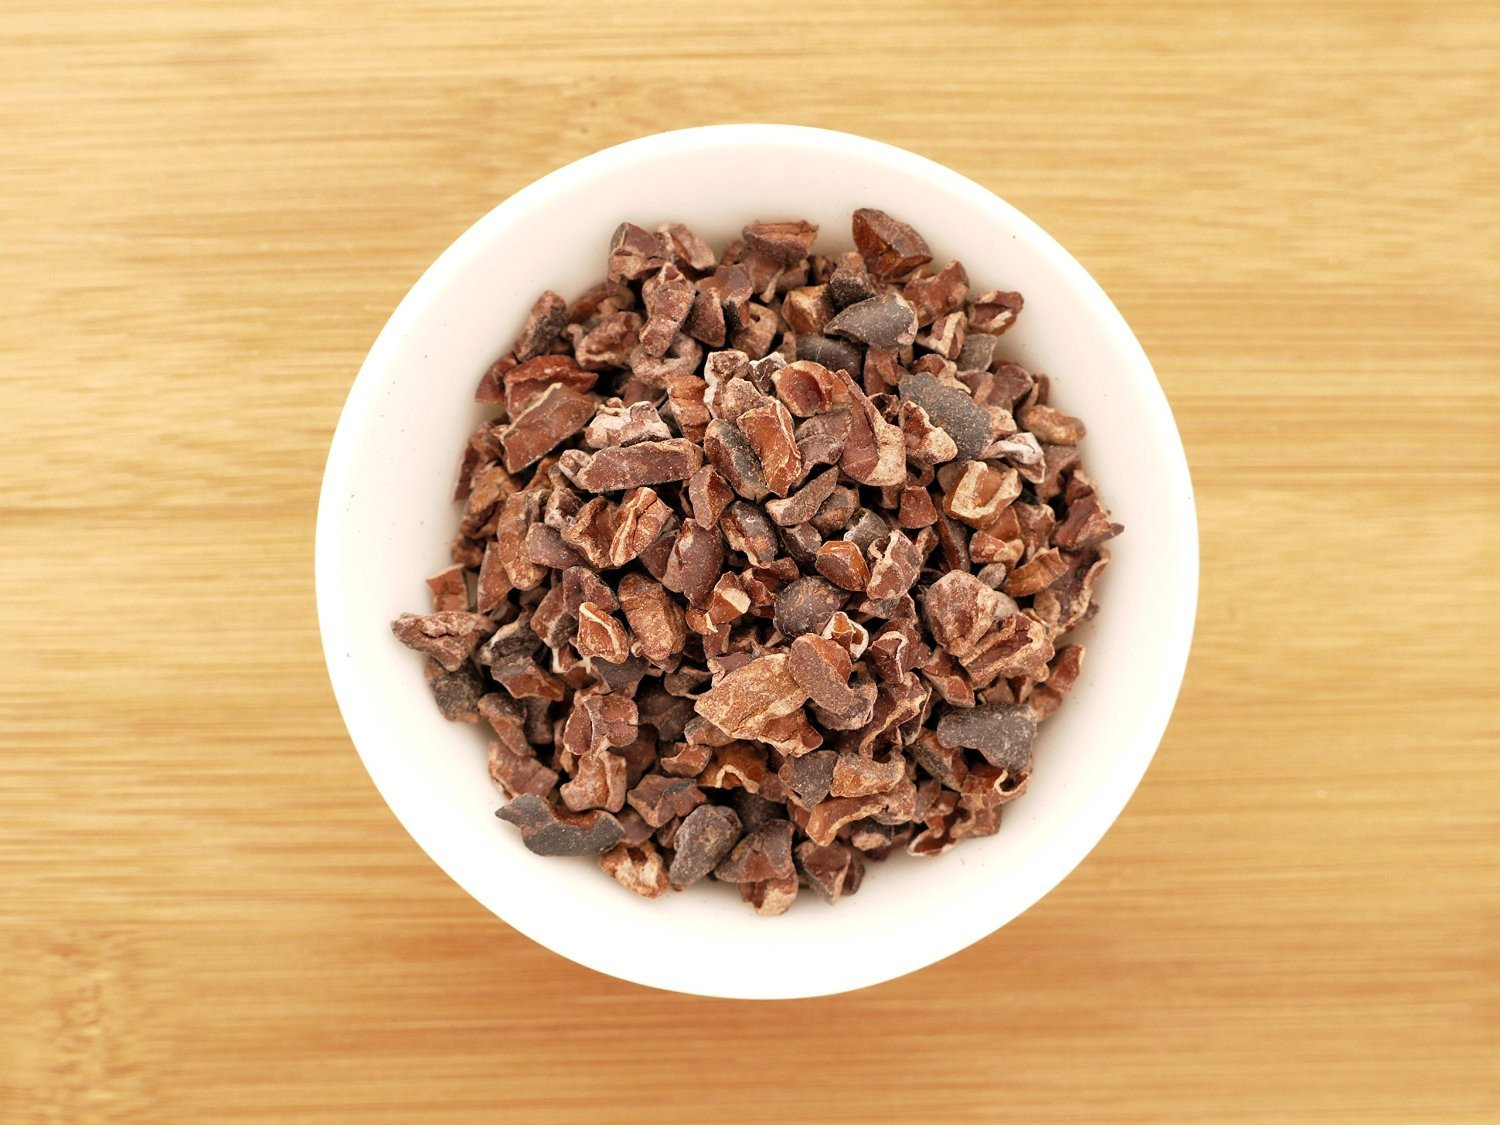 This is an image of a small white bowl containing Organic Cocoa Nibs from Anthony's Goods